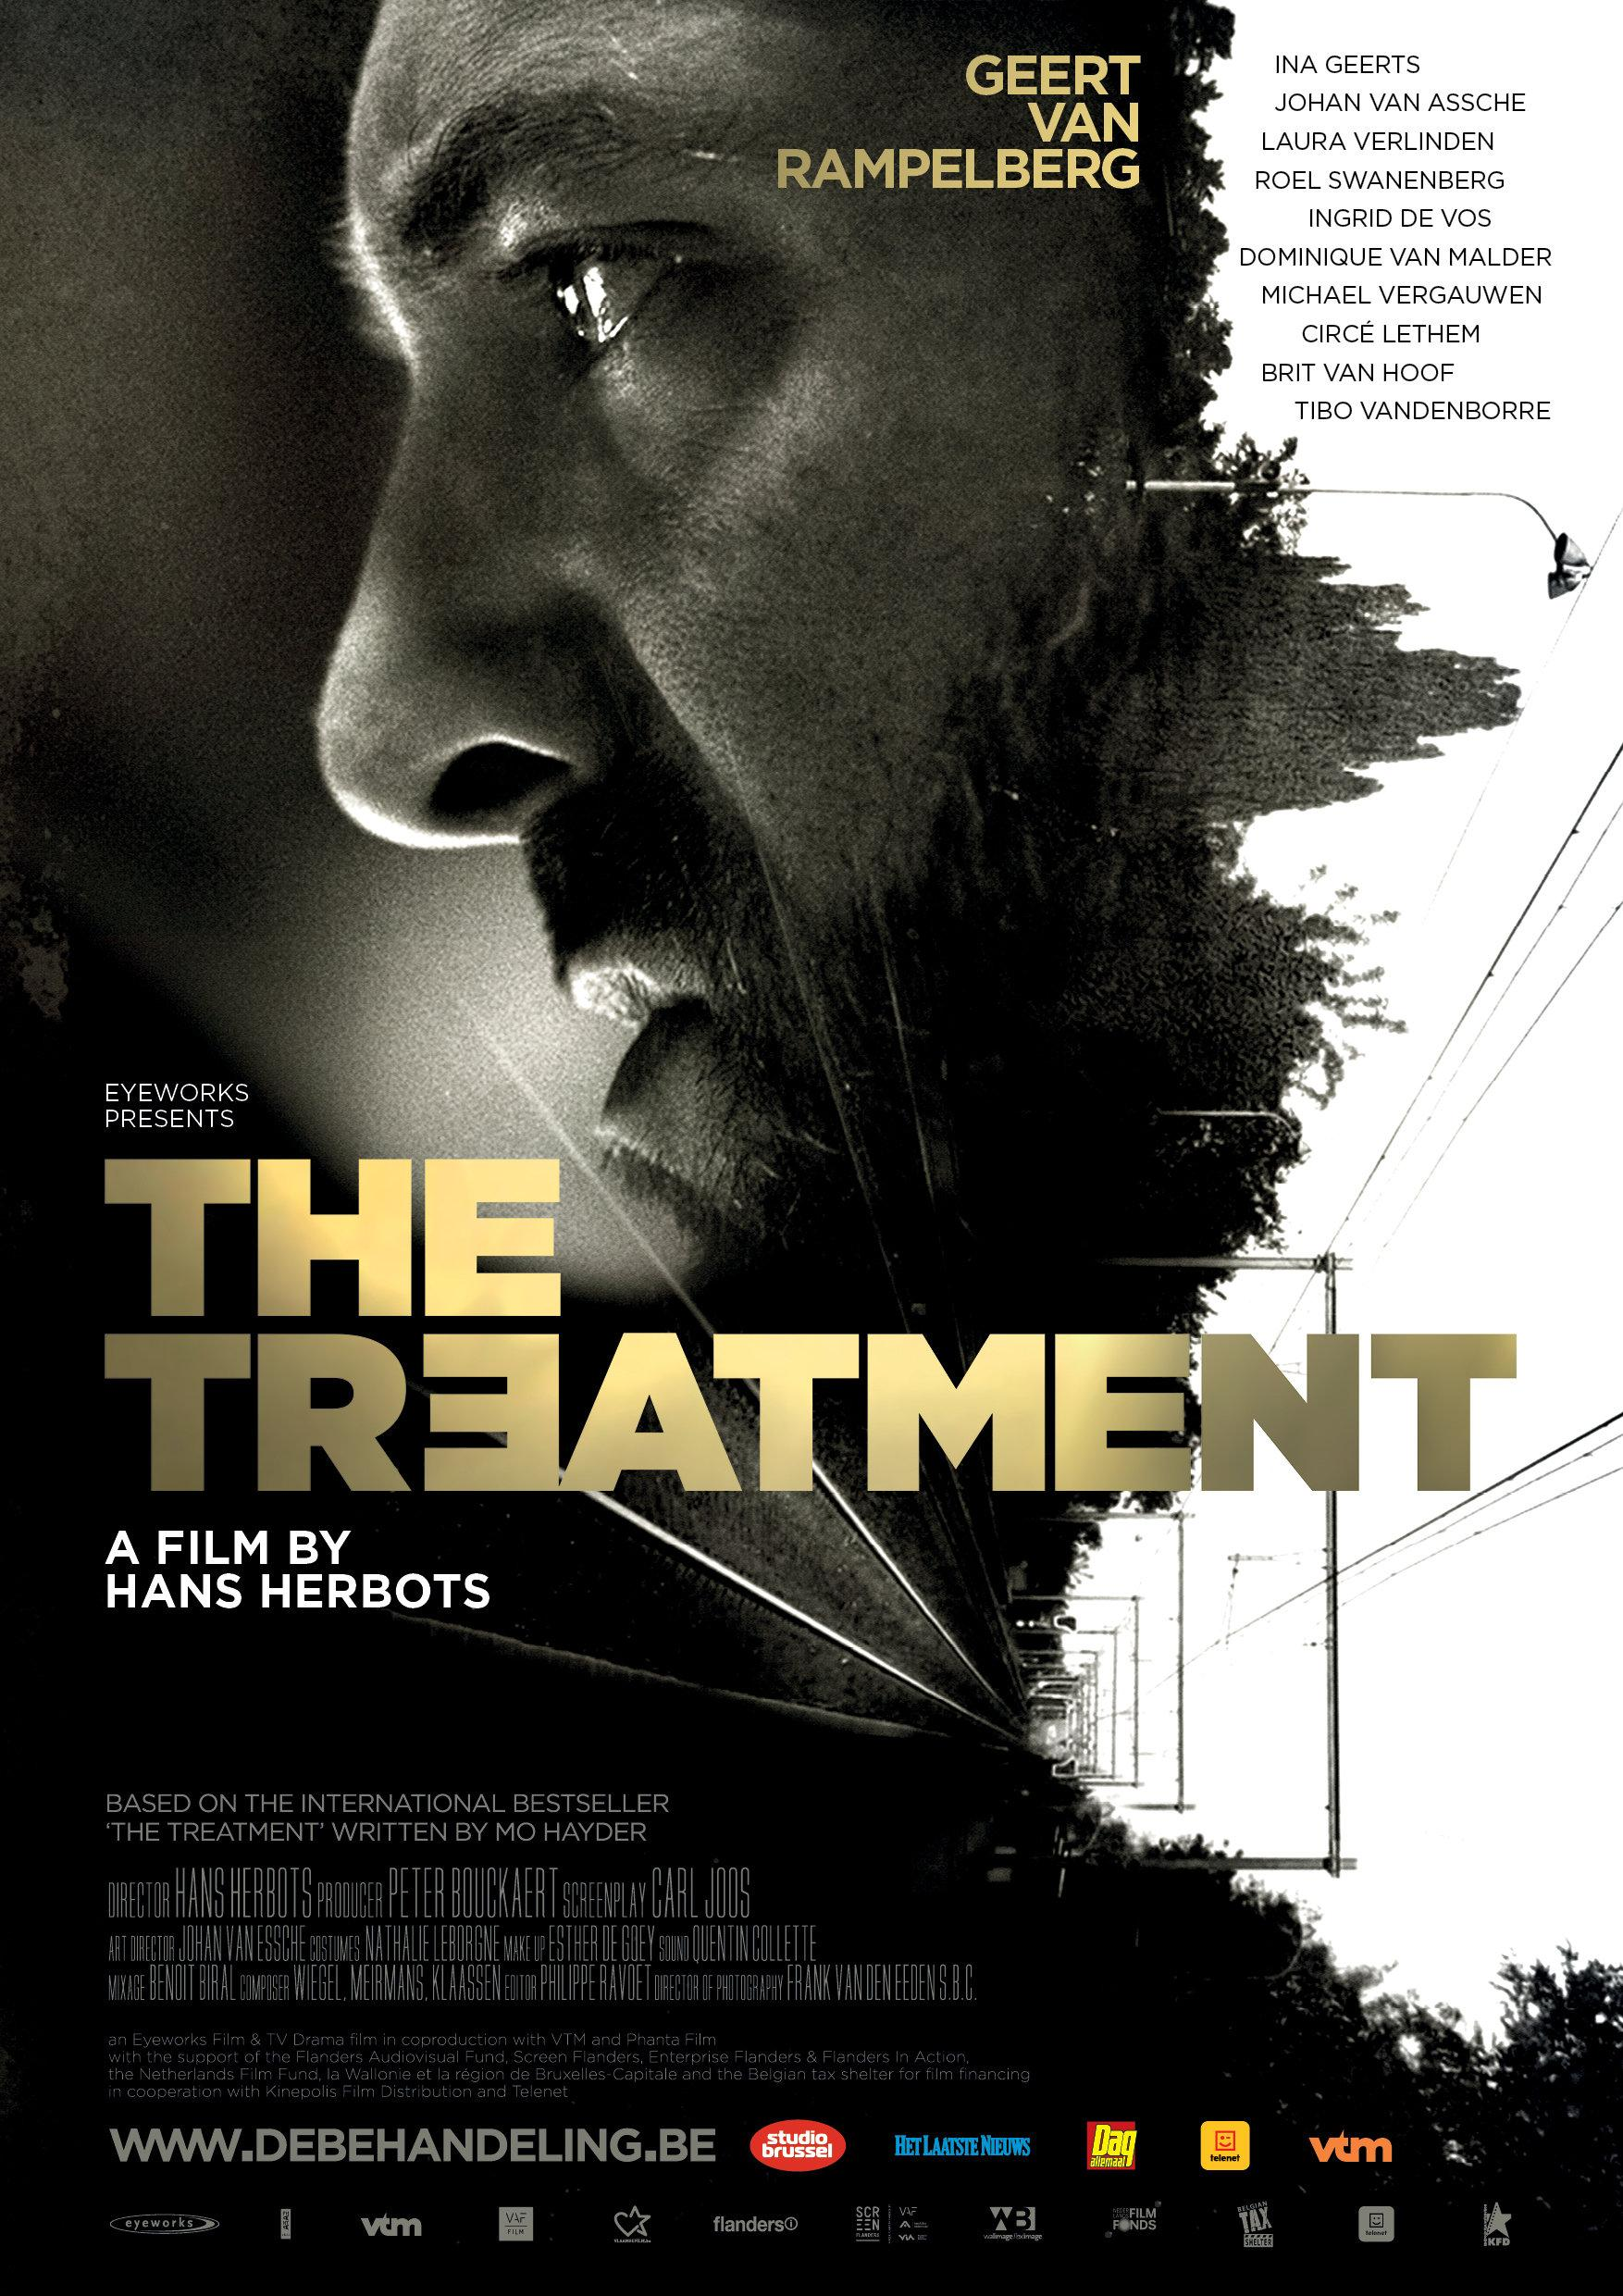 Carl Joos ,Geert Van Rampelberg ,Hans Herbots ,Ina Geerts , Johan van Assche , Mo Hayder ,movie download , movie free download , movie free download with direct link , The Treatment (2014) , The Treatment (2014) free download,دانلود رایگان فیلم,دانلود فیلم,دانلود فیلم The Treatment (2014) ,دانلود فیلم با لینک مستقیم,دانلود فیلم رایگان,